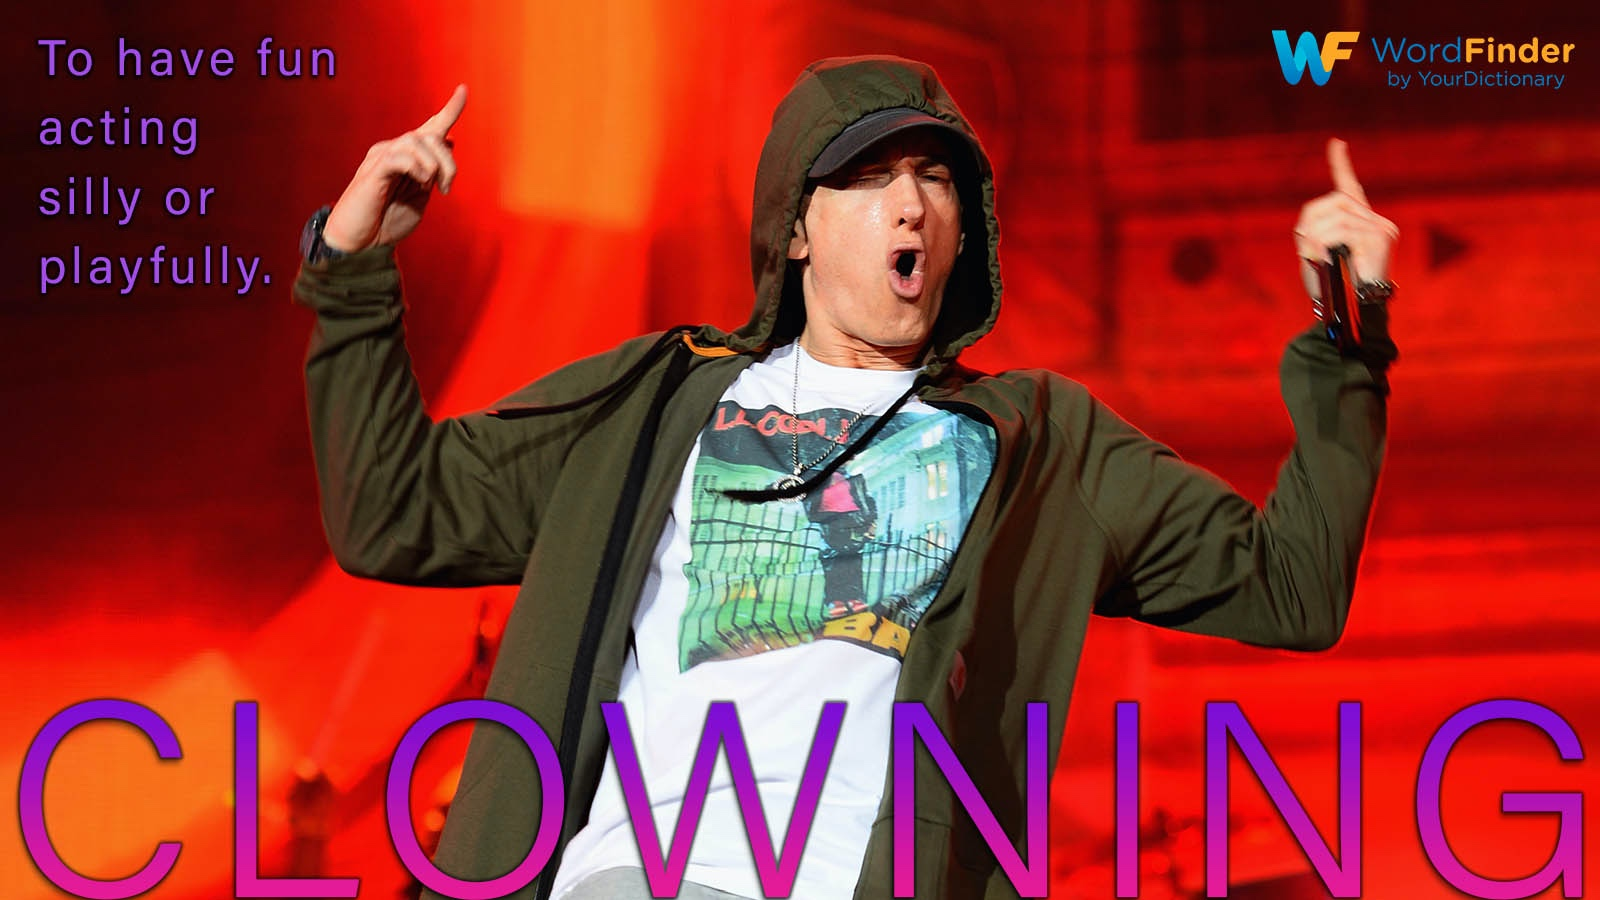 definition clowning with Image of eminem